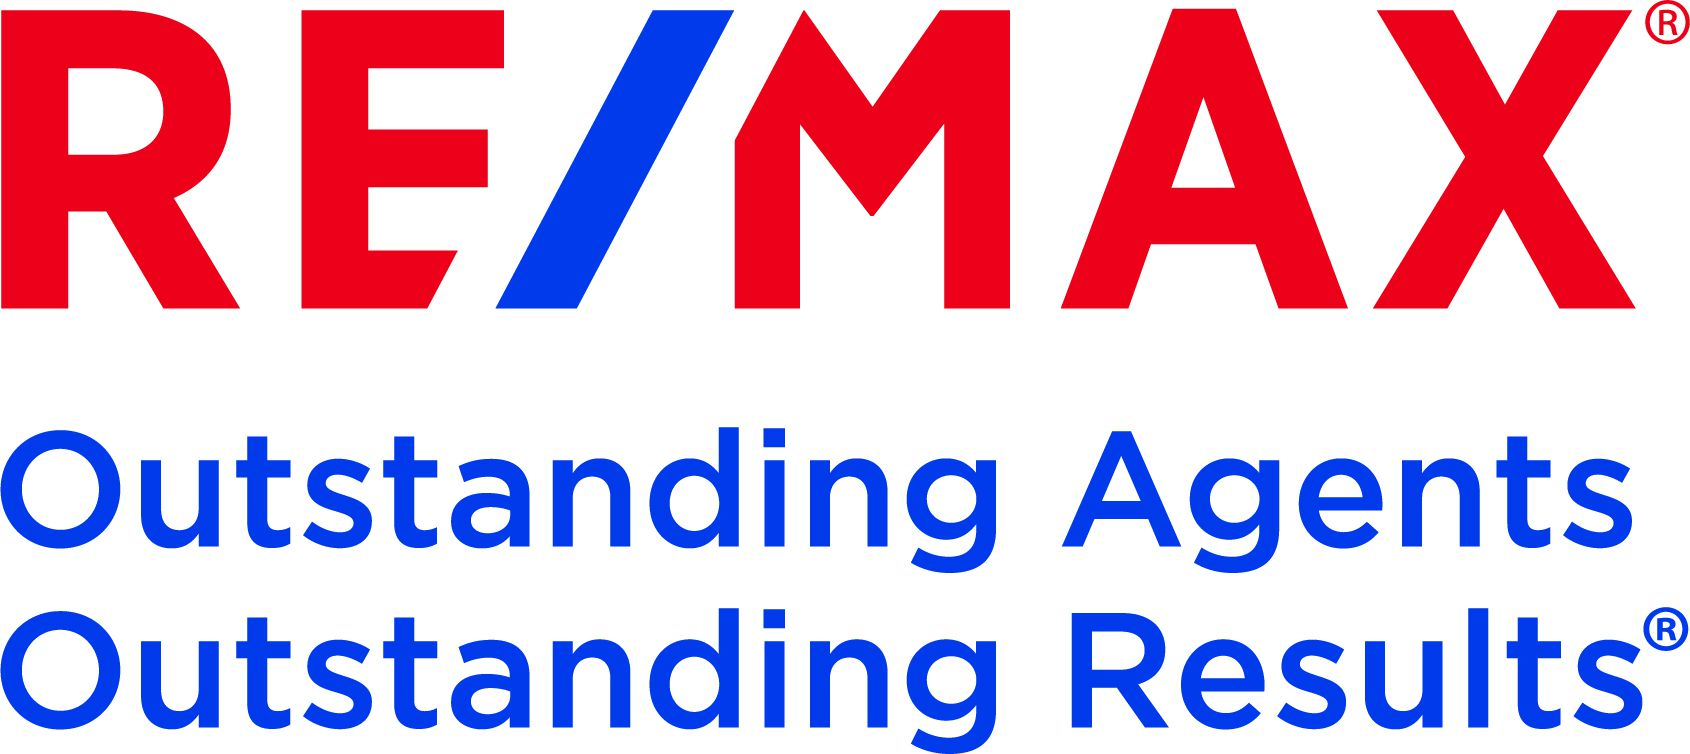 Find a RE/MAX Agent